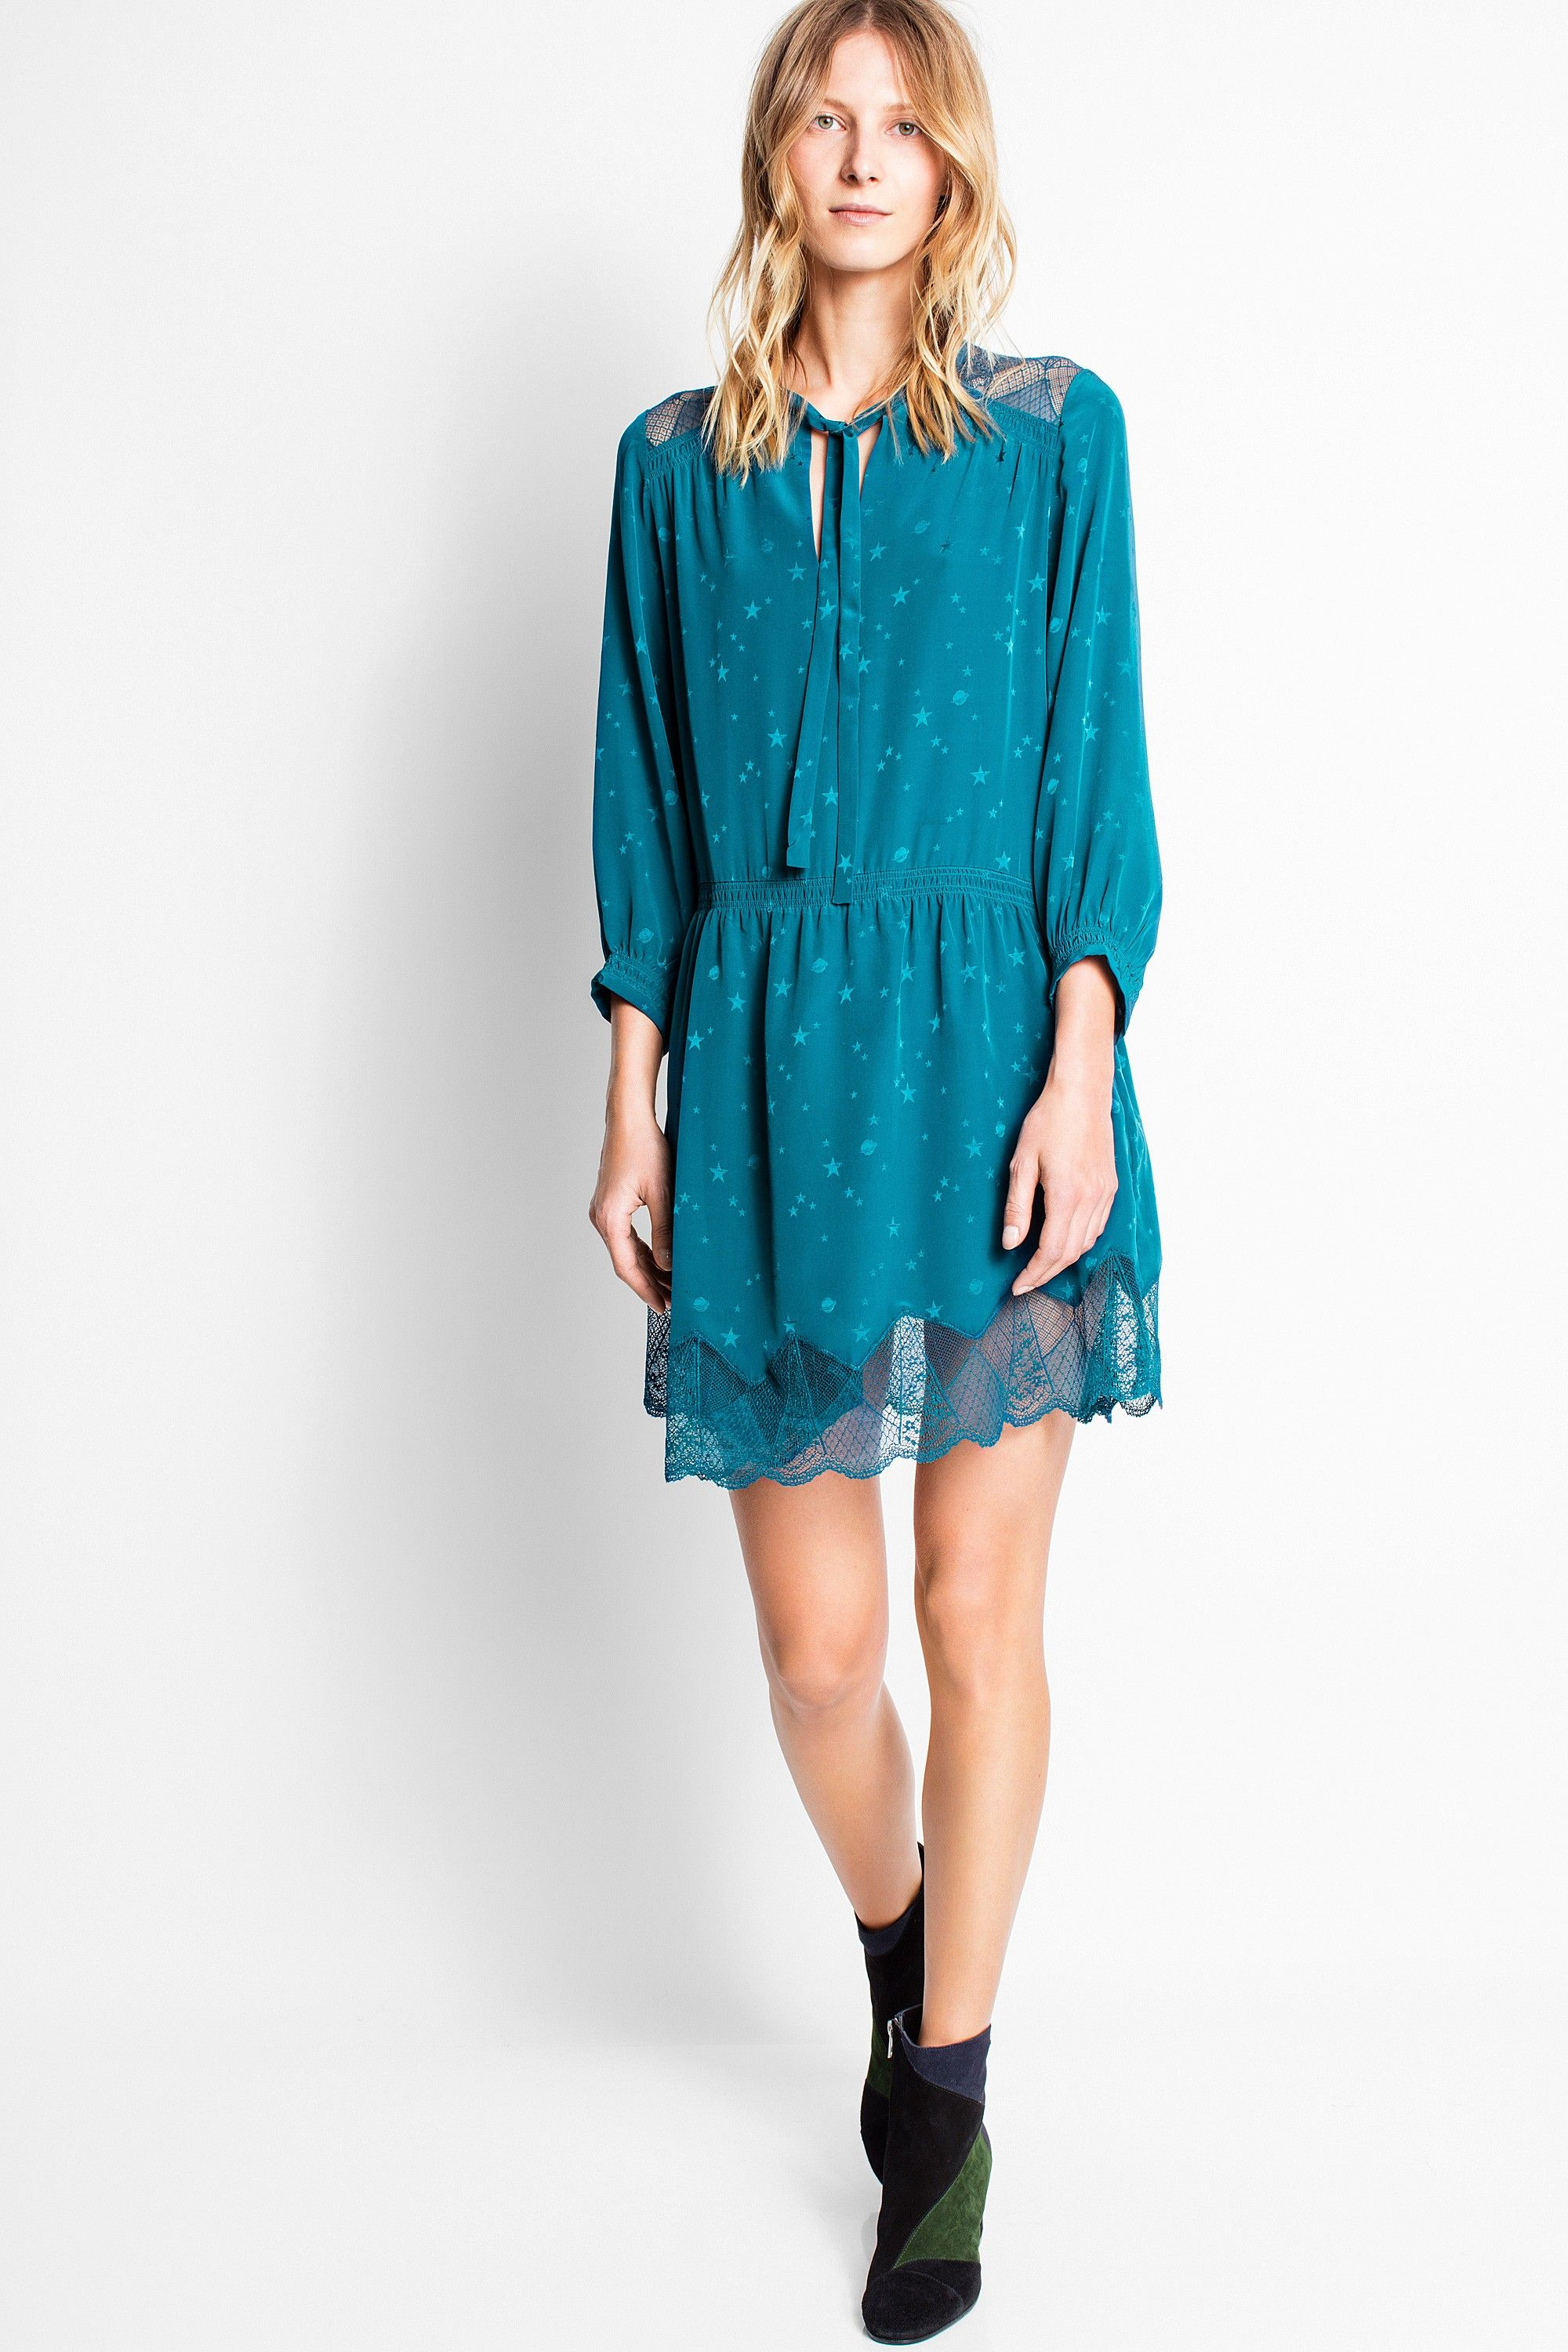 Fallwinter Prusse amp; Deluxe Riche Voltaire Zadig Robe Jac qfPpSw0